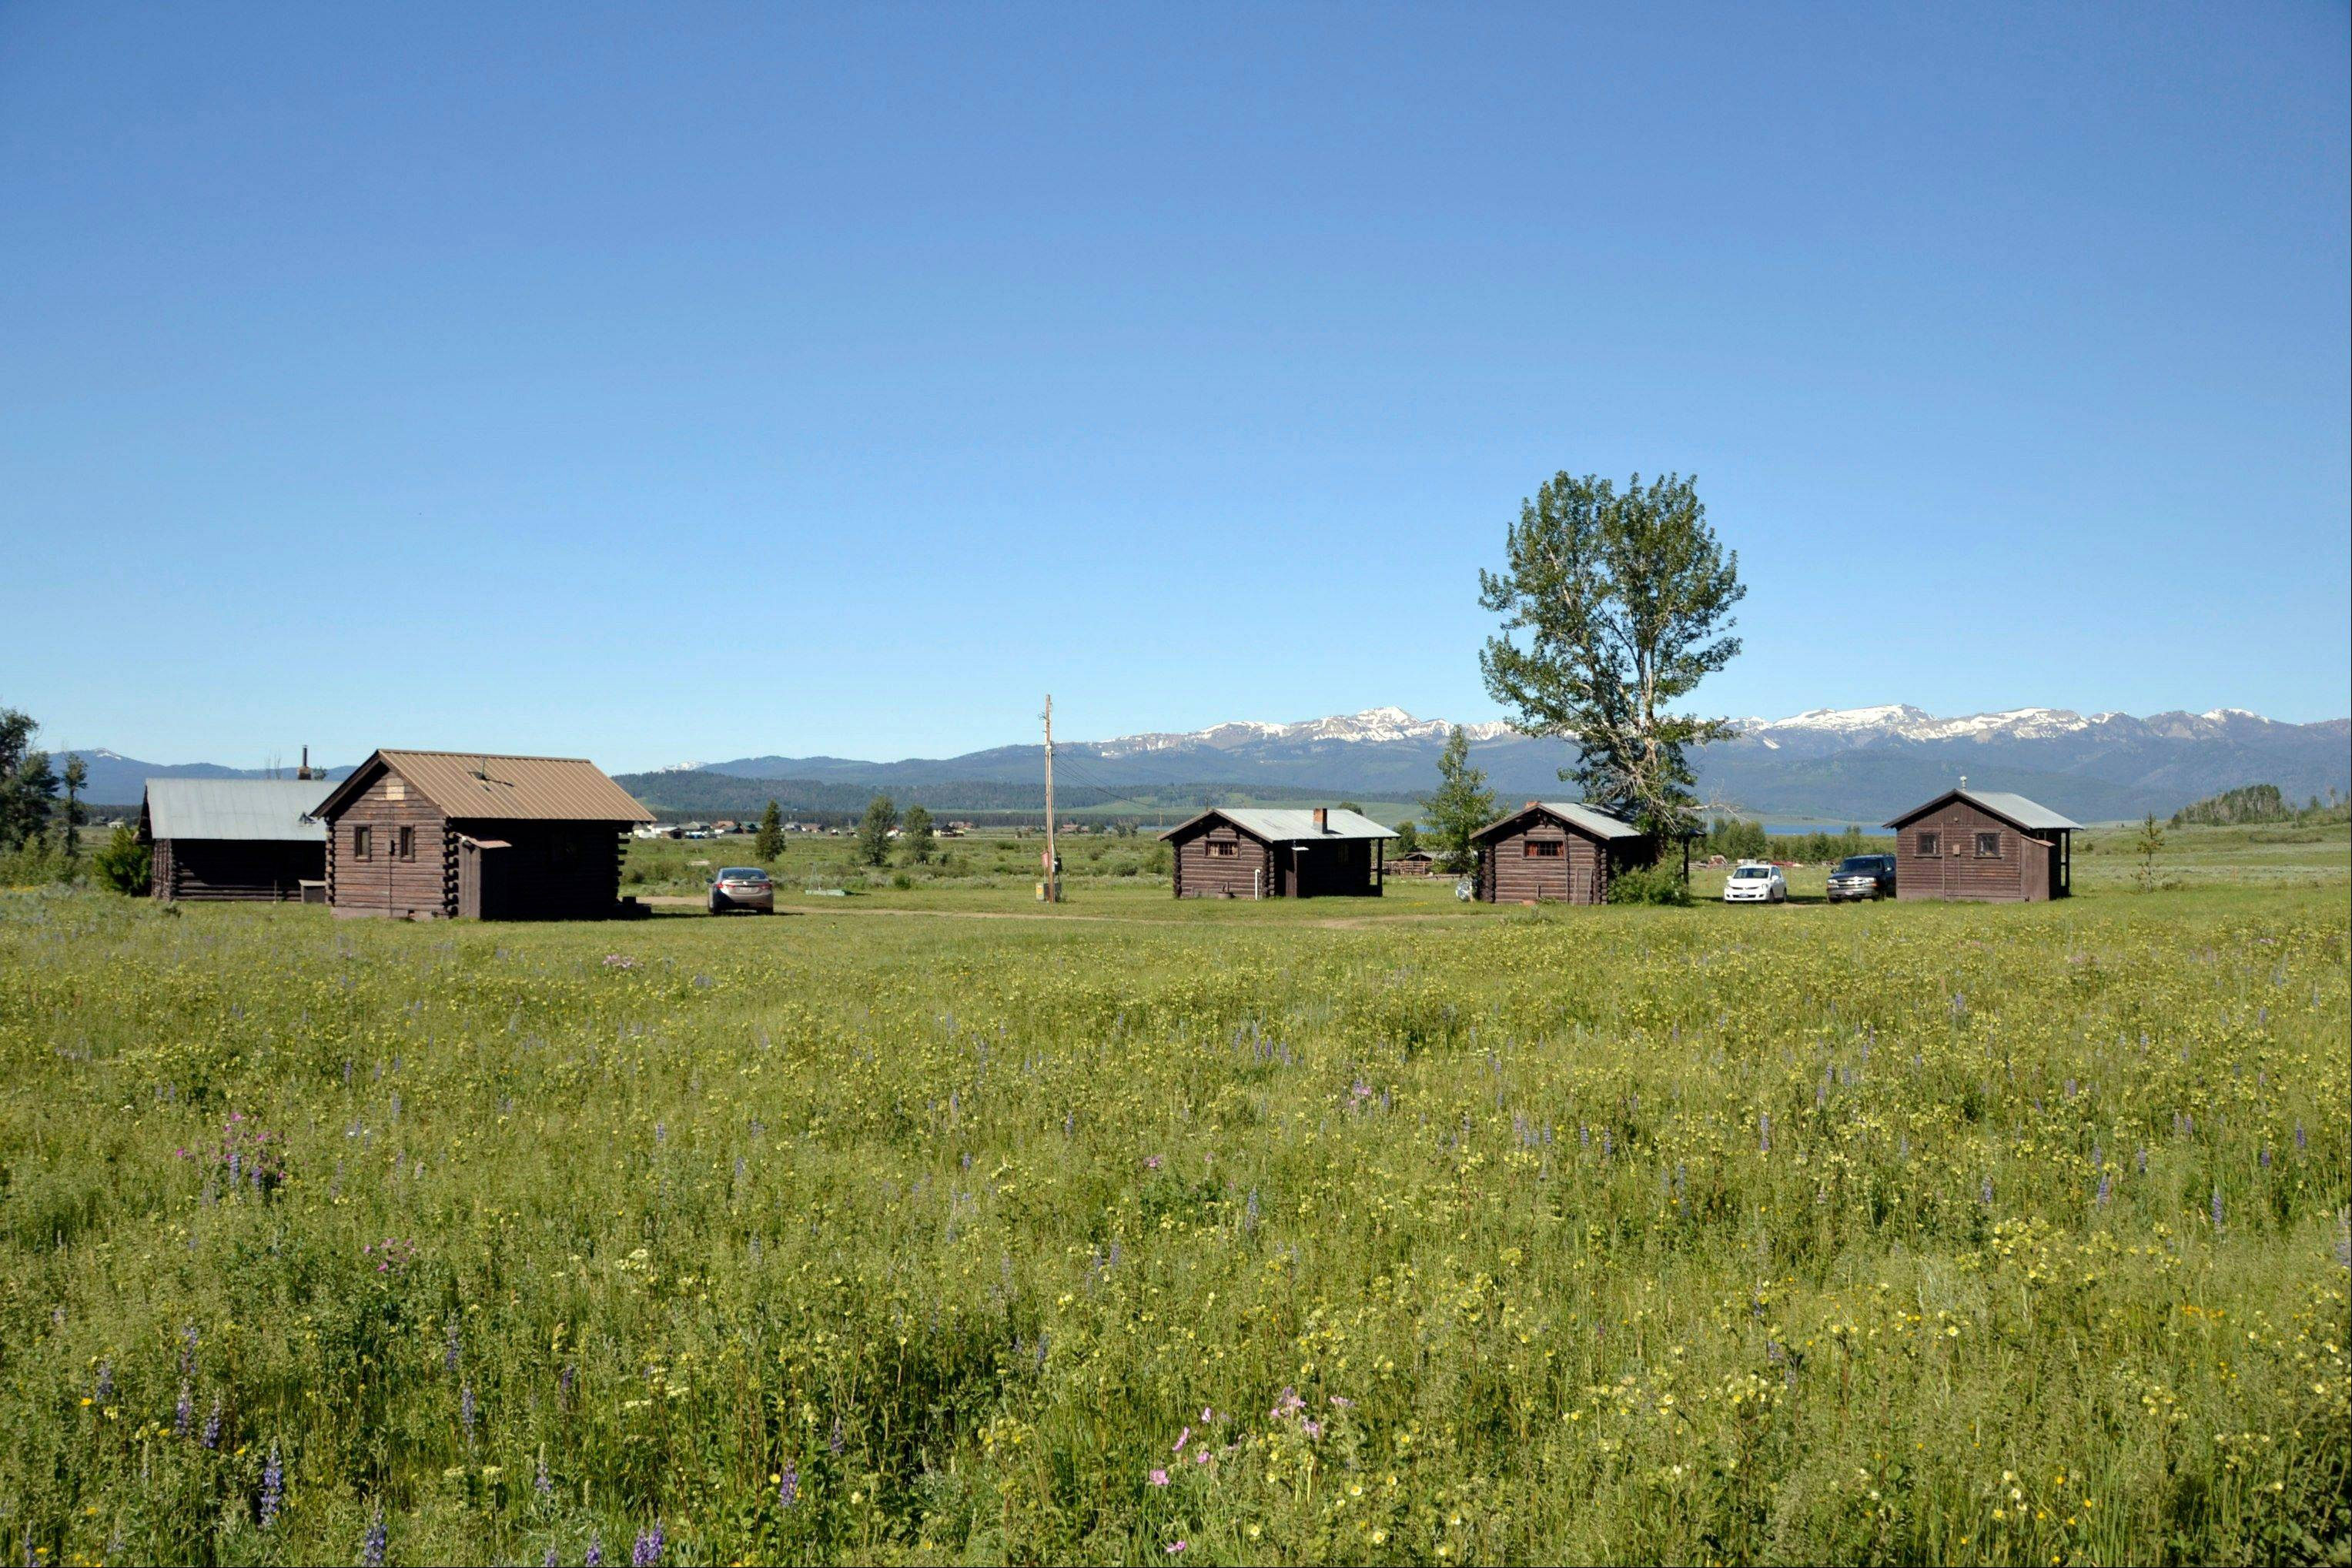 Rental cabins at the Parade Rest Ranch near West Yellowstone, Mont.